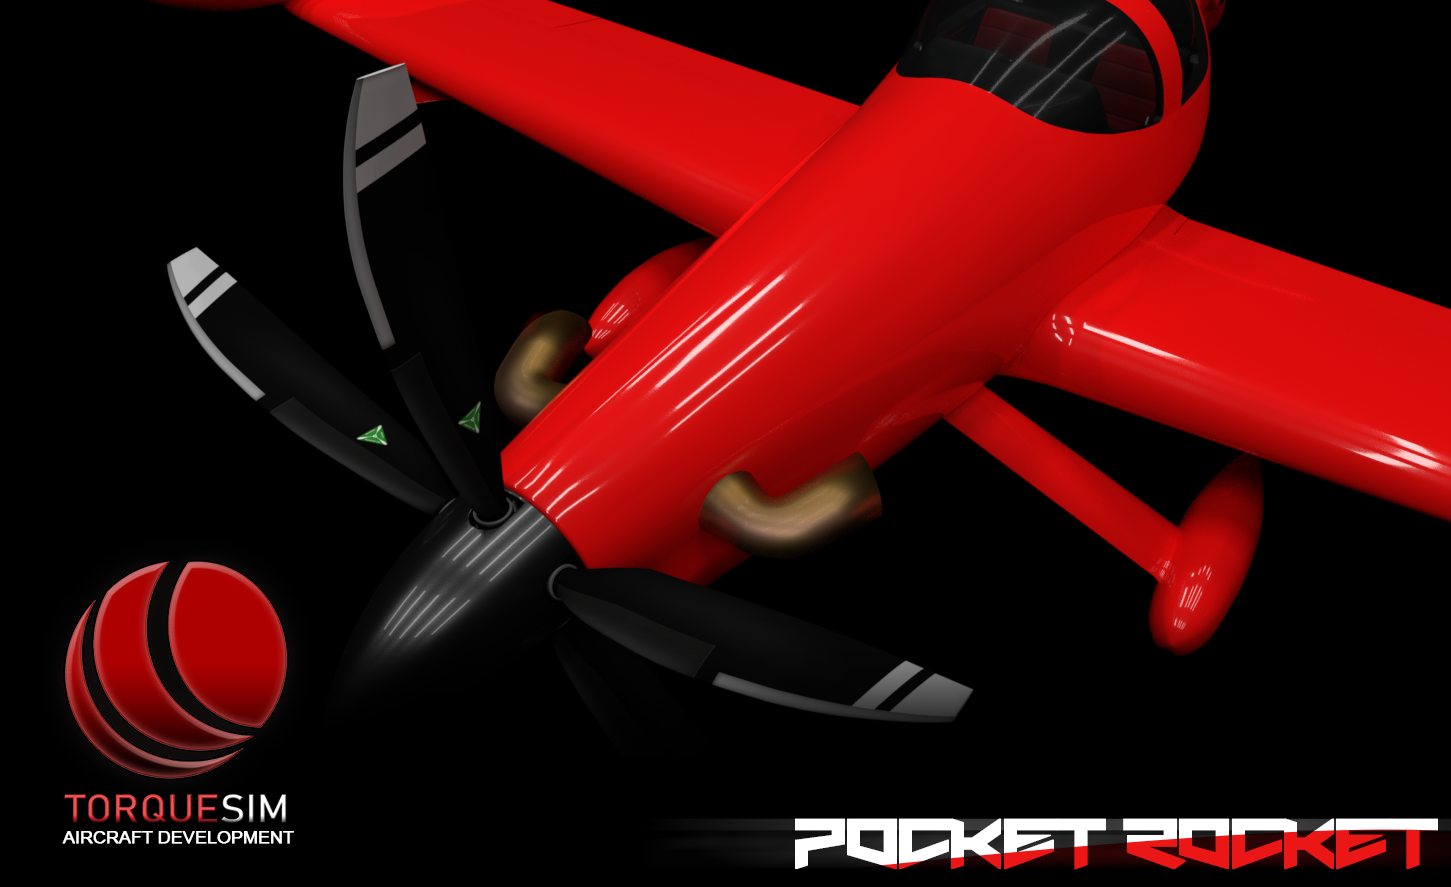 In Development: The Pocket Rocket